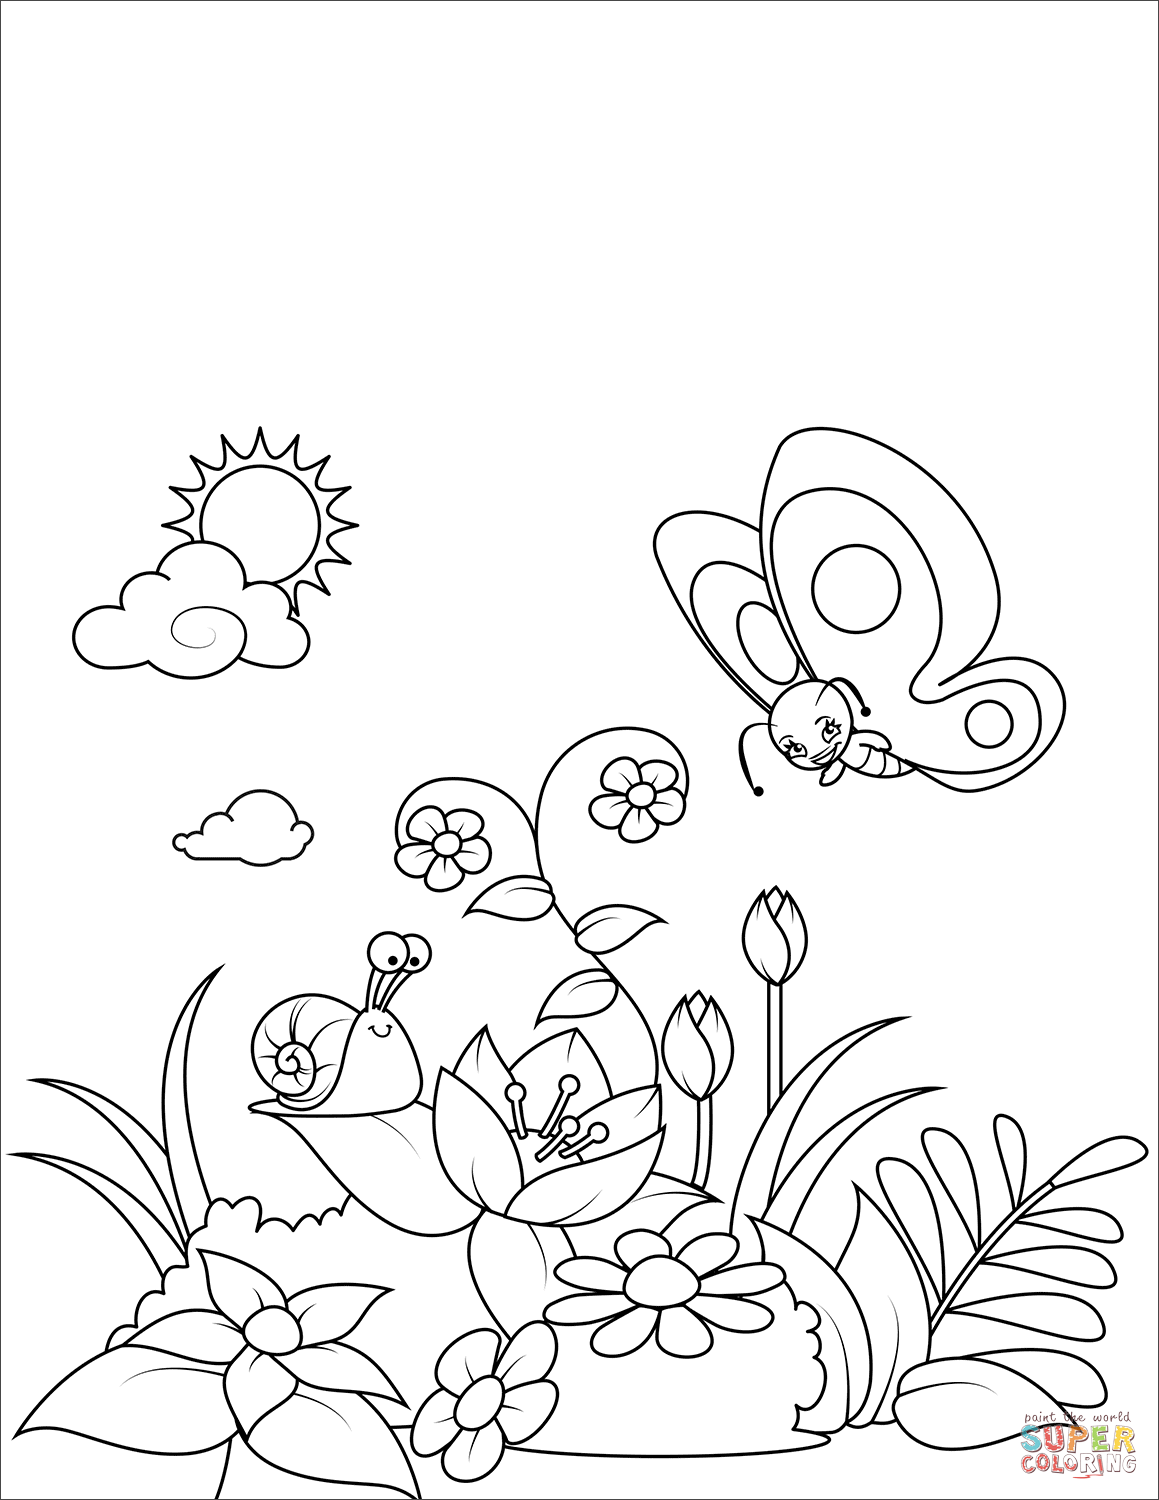 A Snail and a Butterfly on a Flowering Glade coloring page